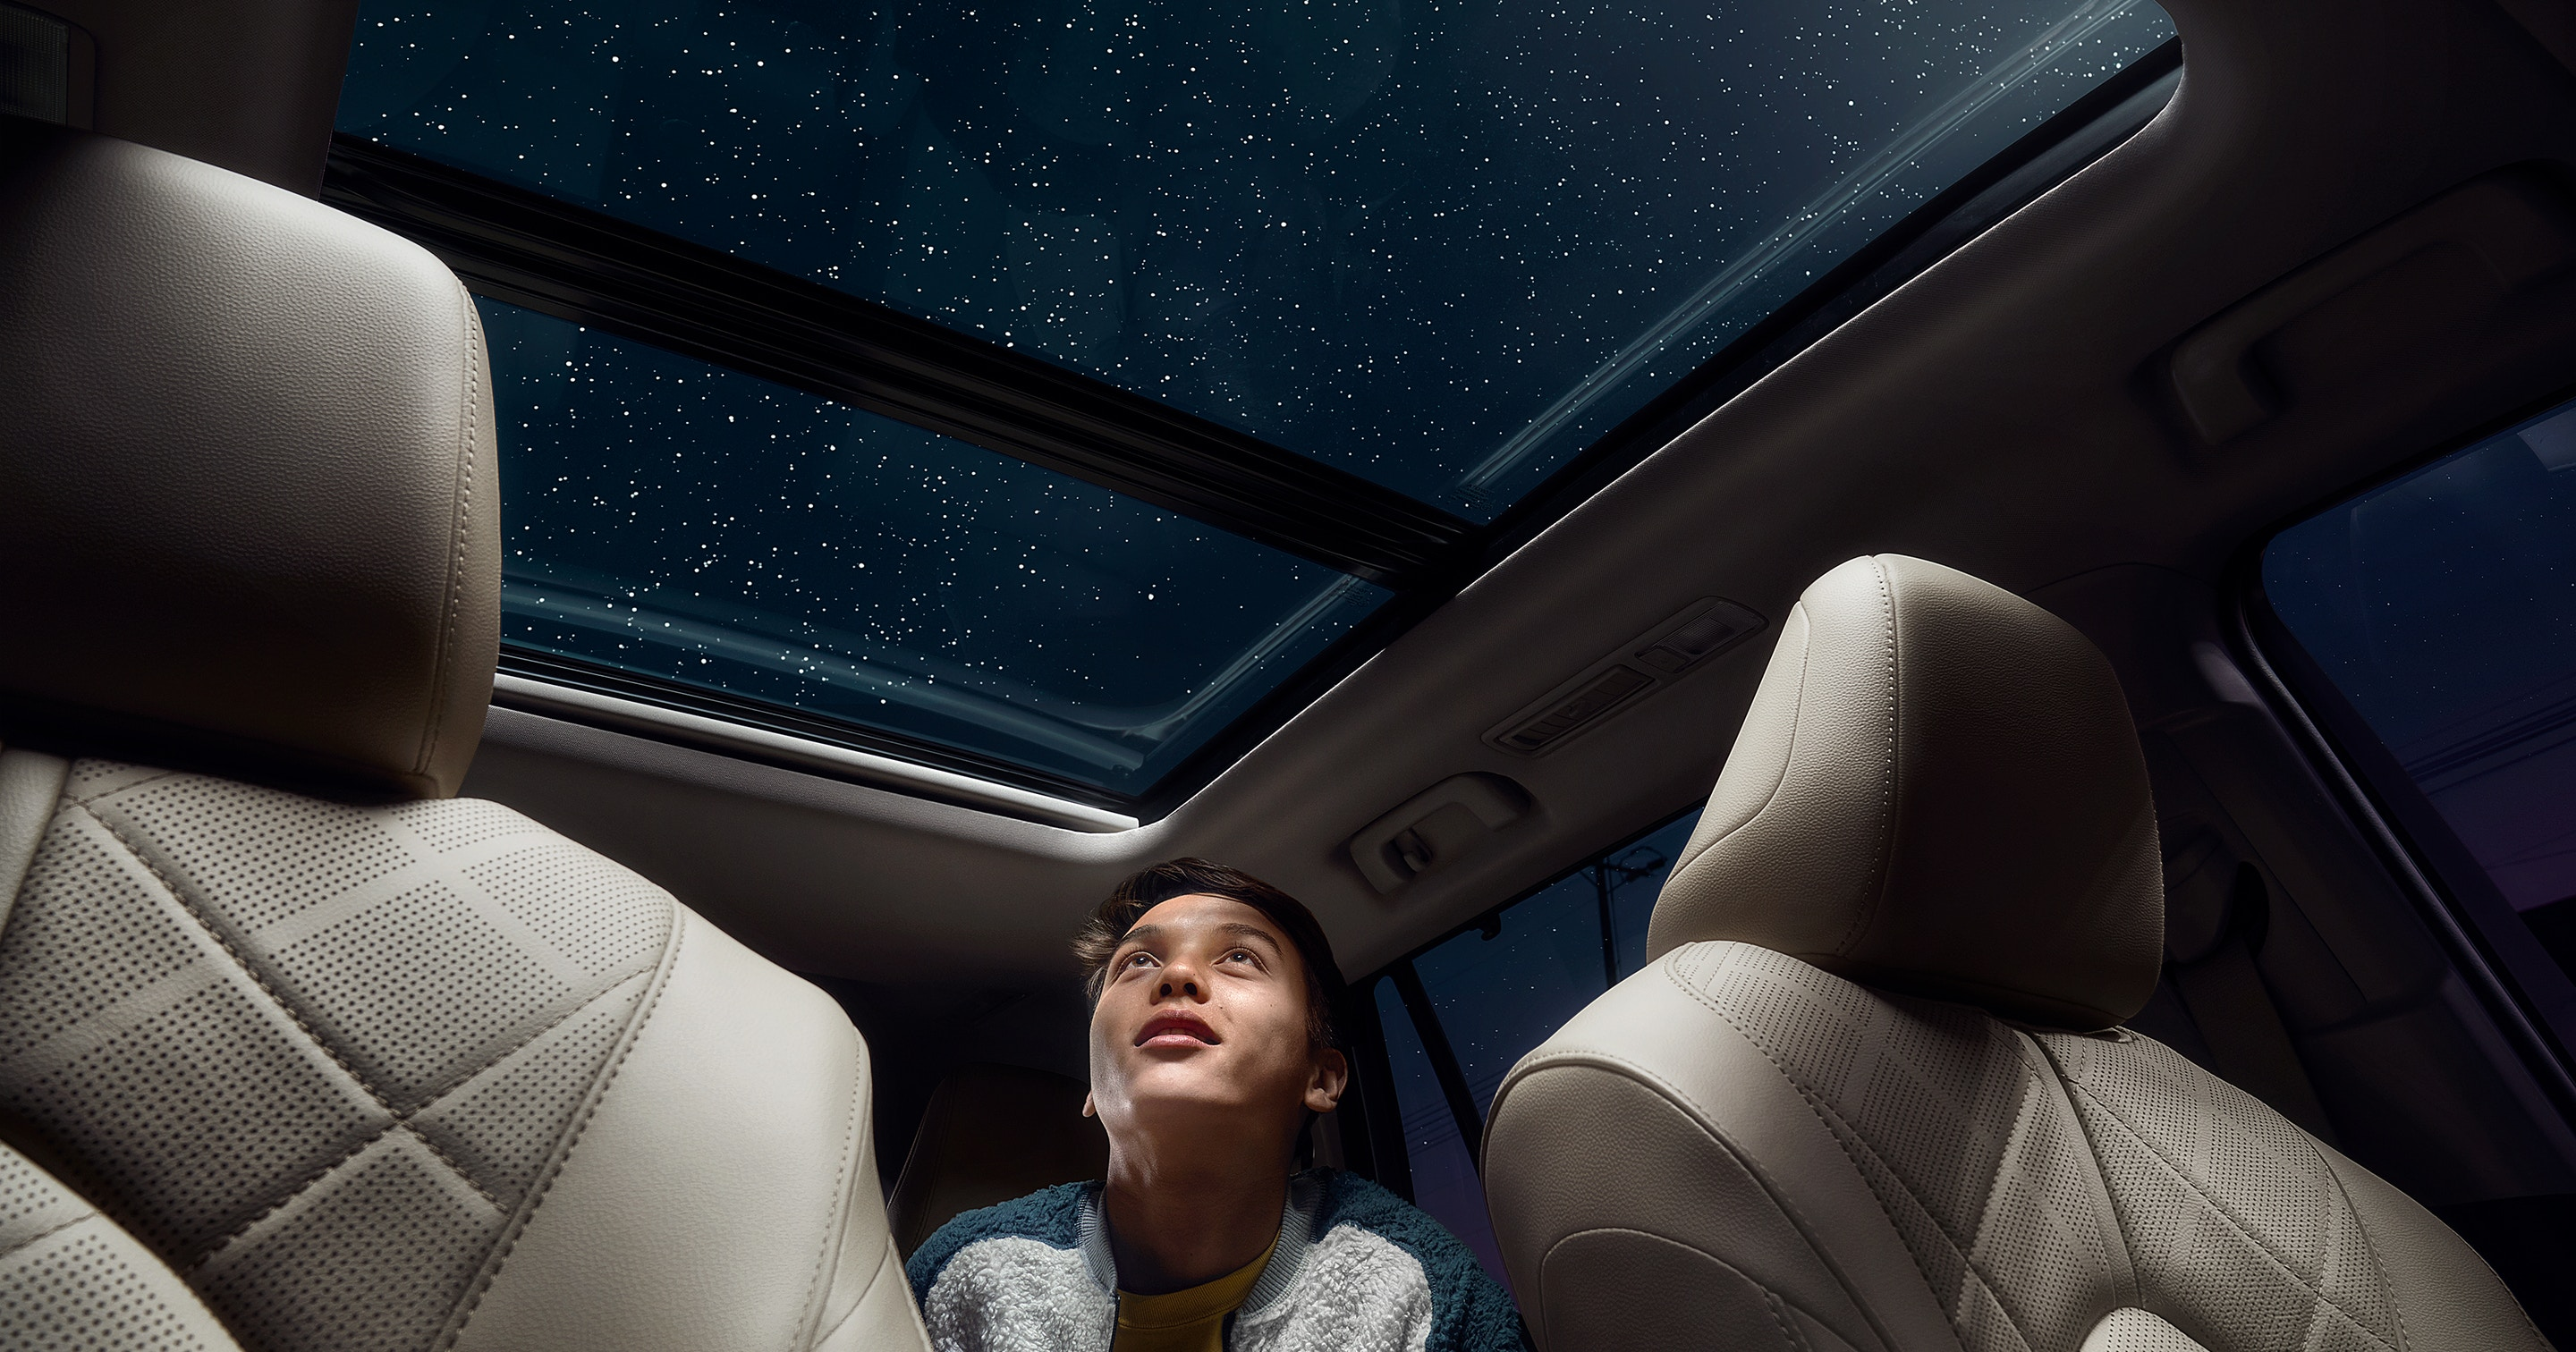 Moonroof in the 2020 Highlander